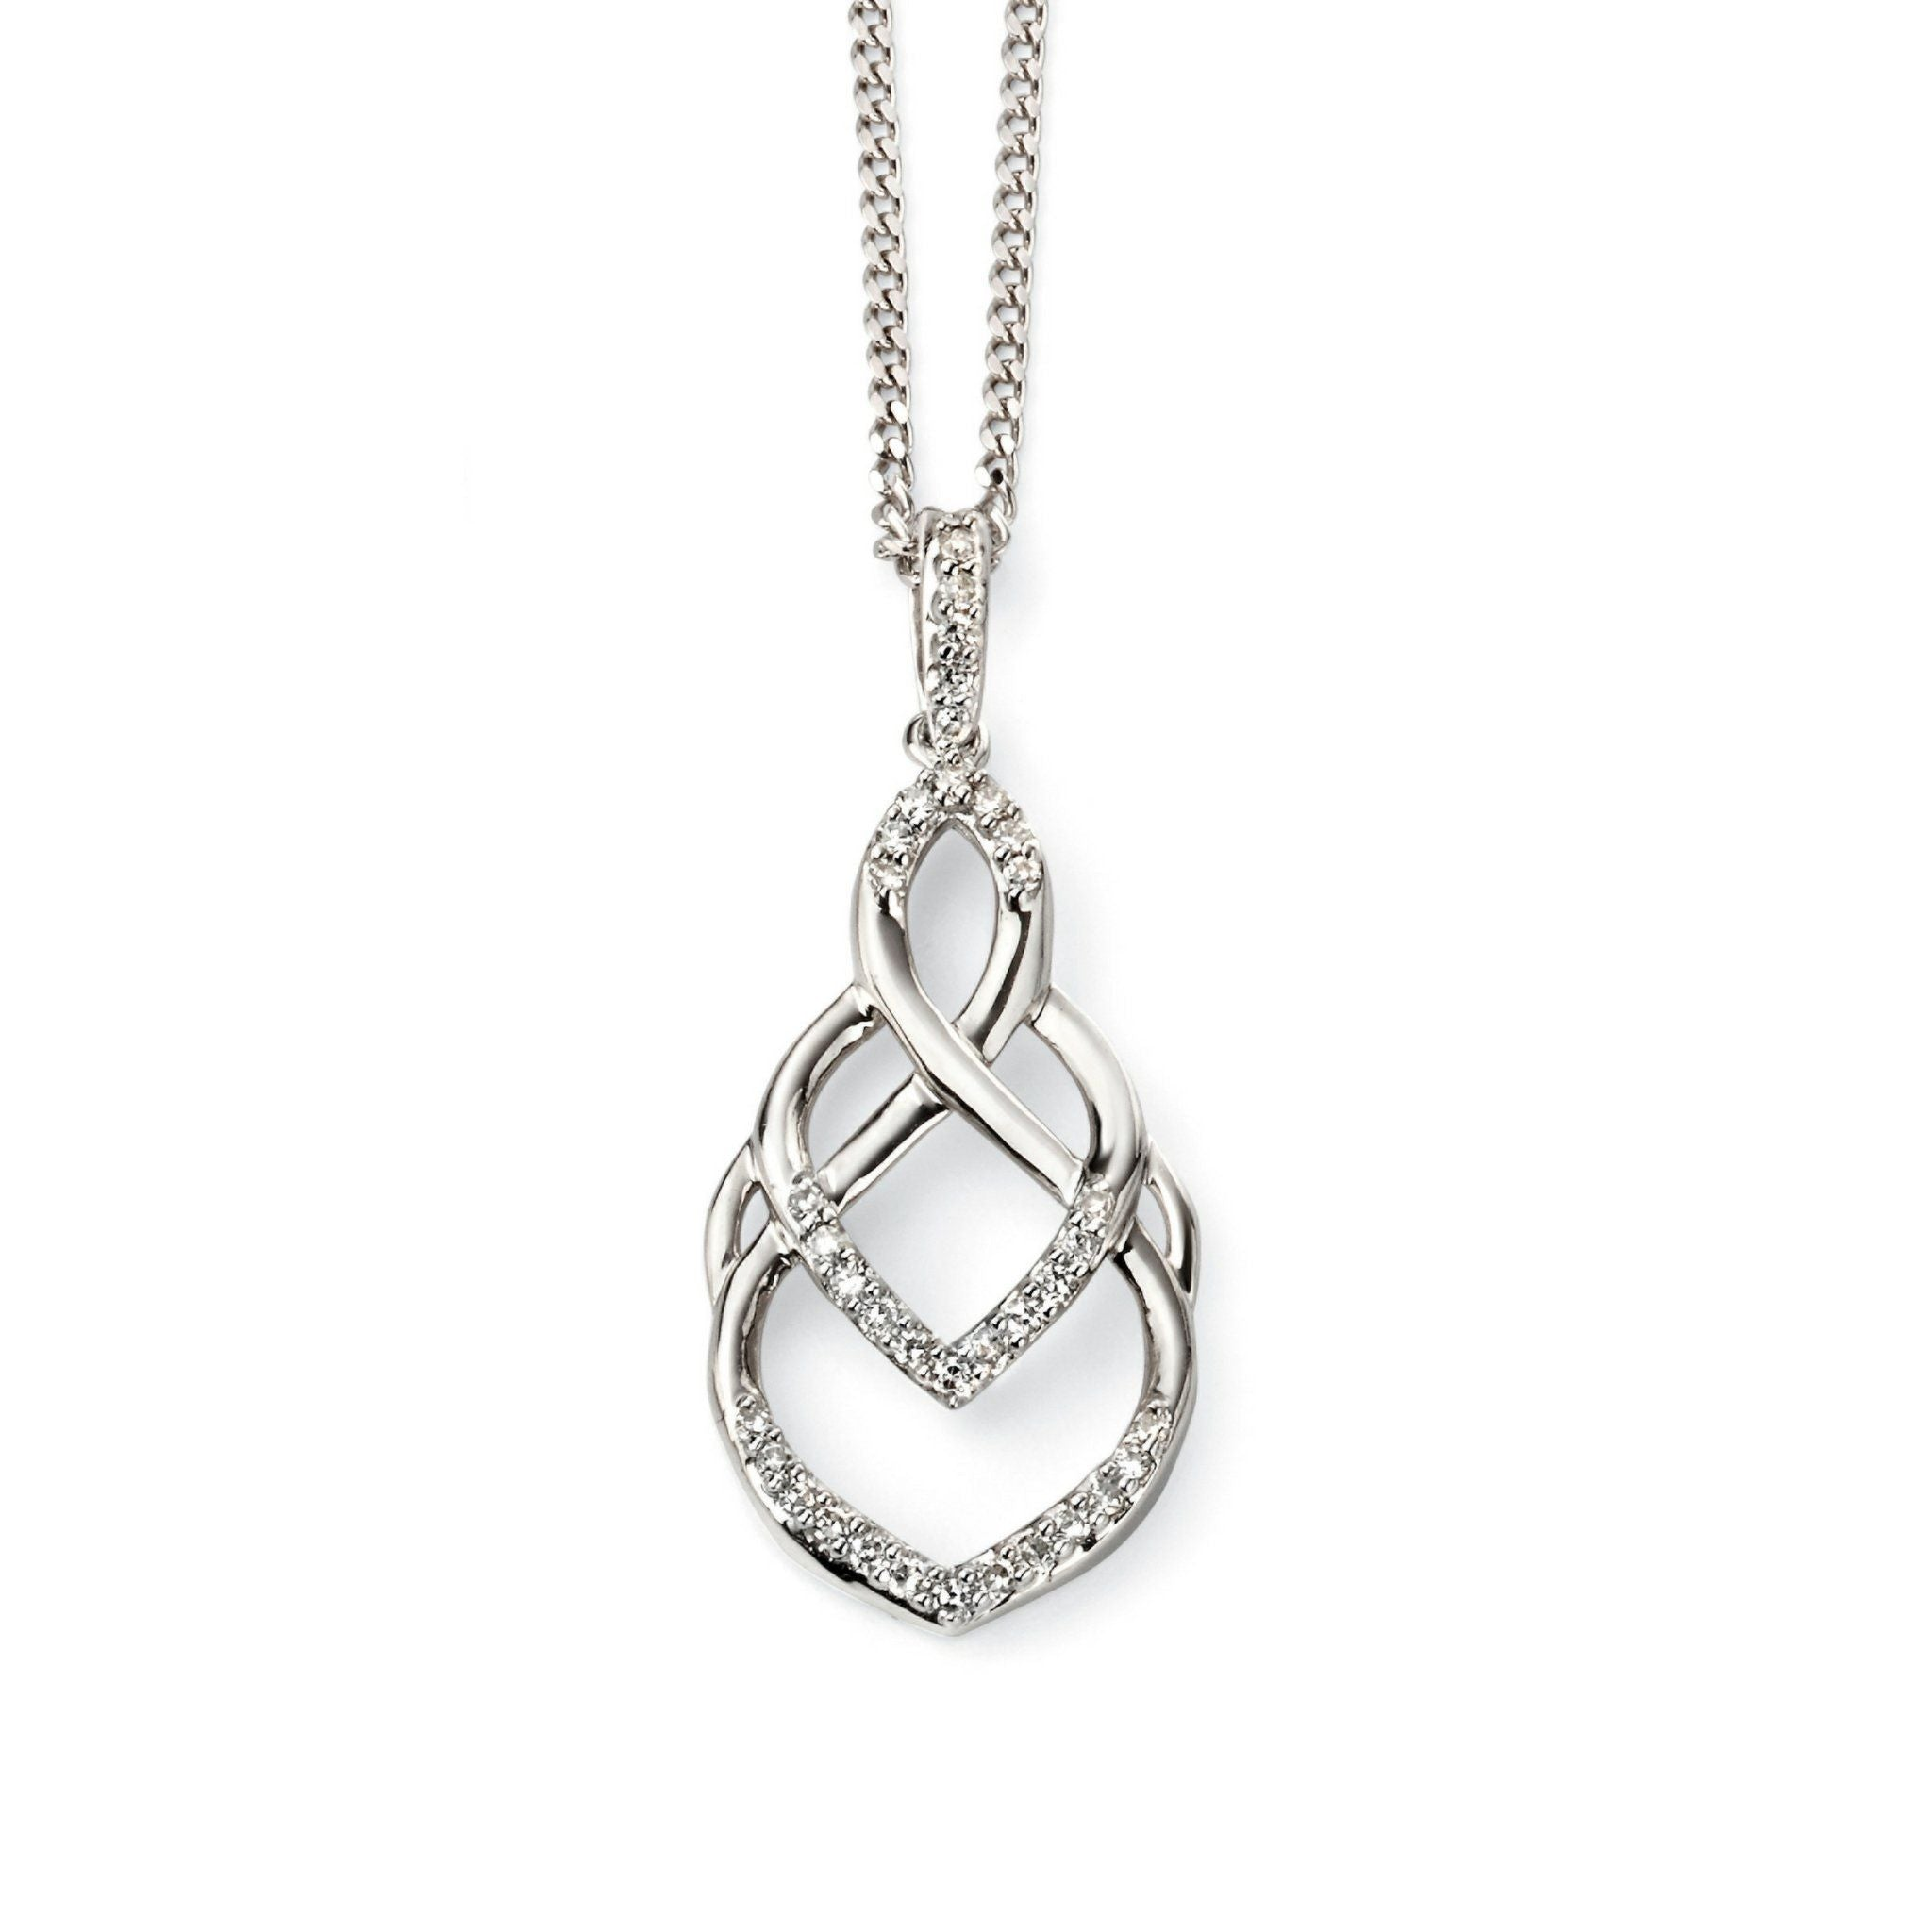 9ct White Gold & Diamond Pendant